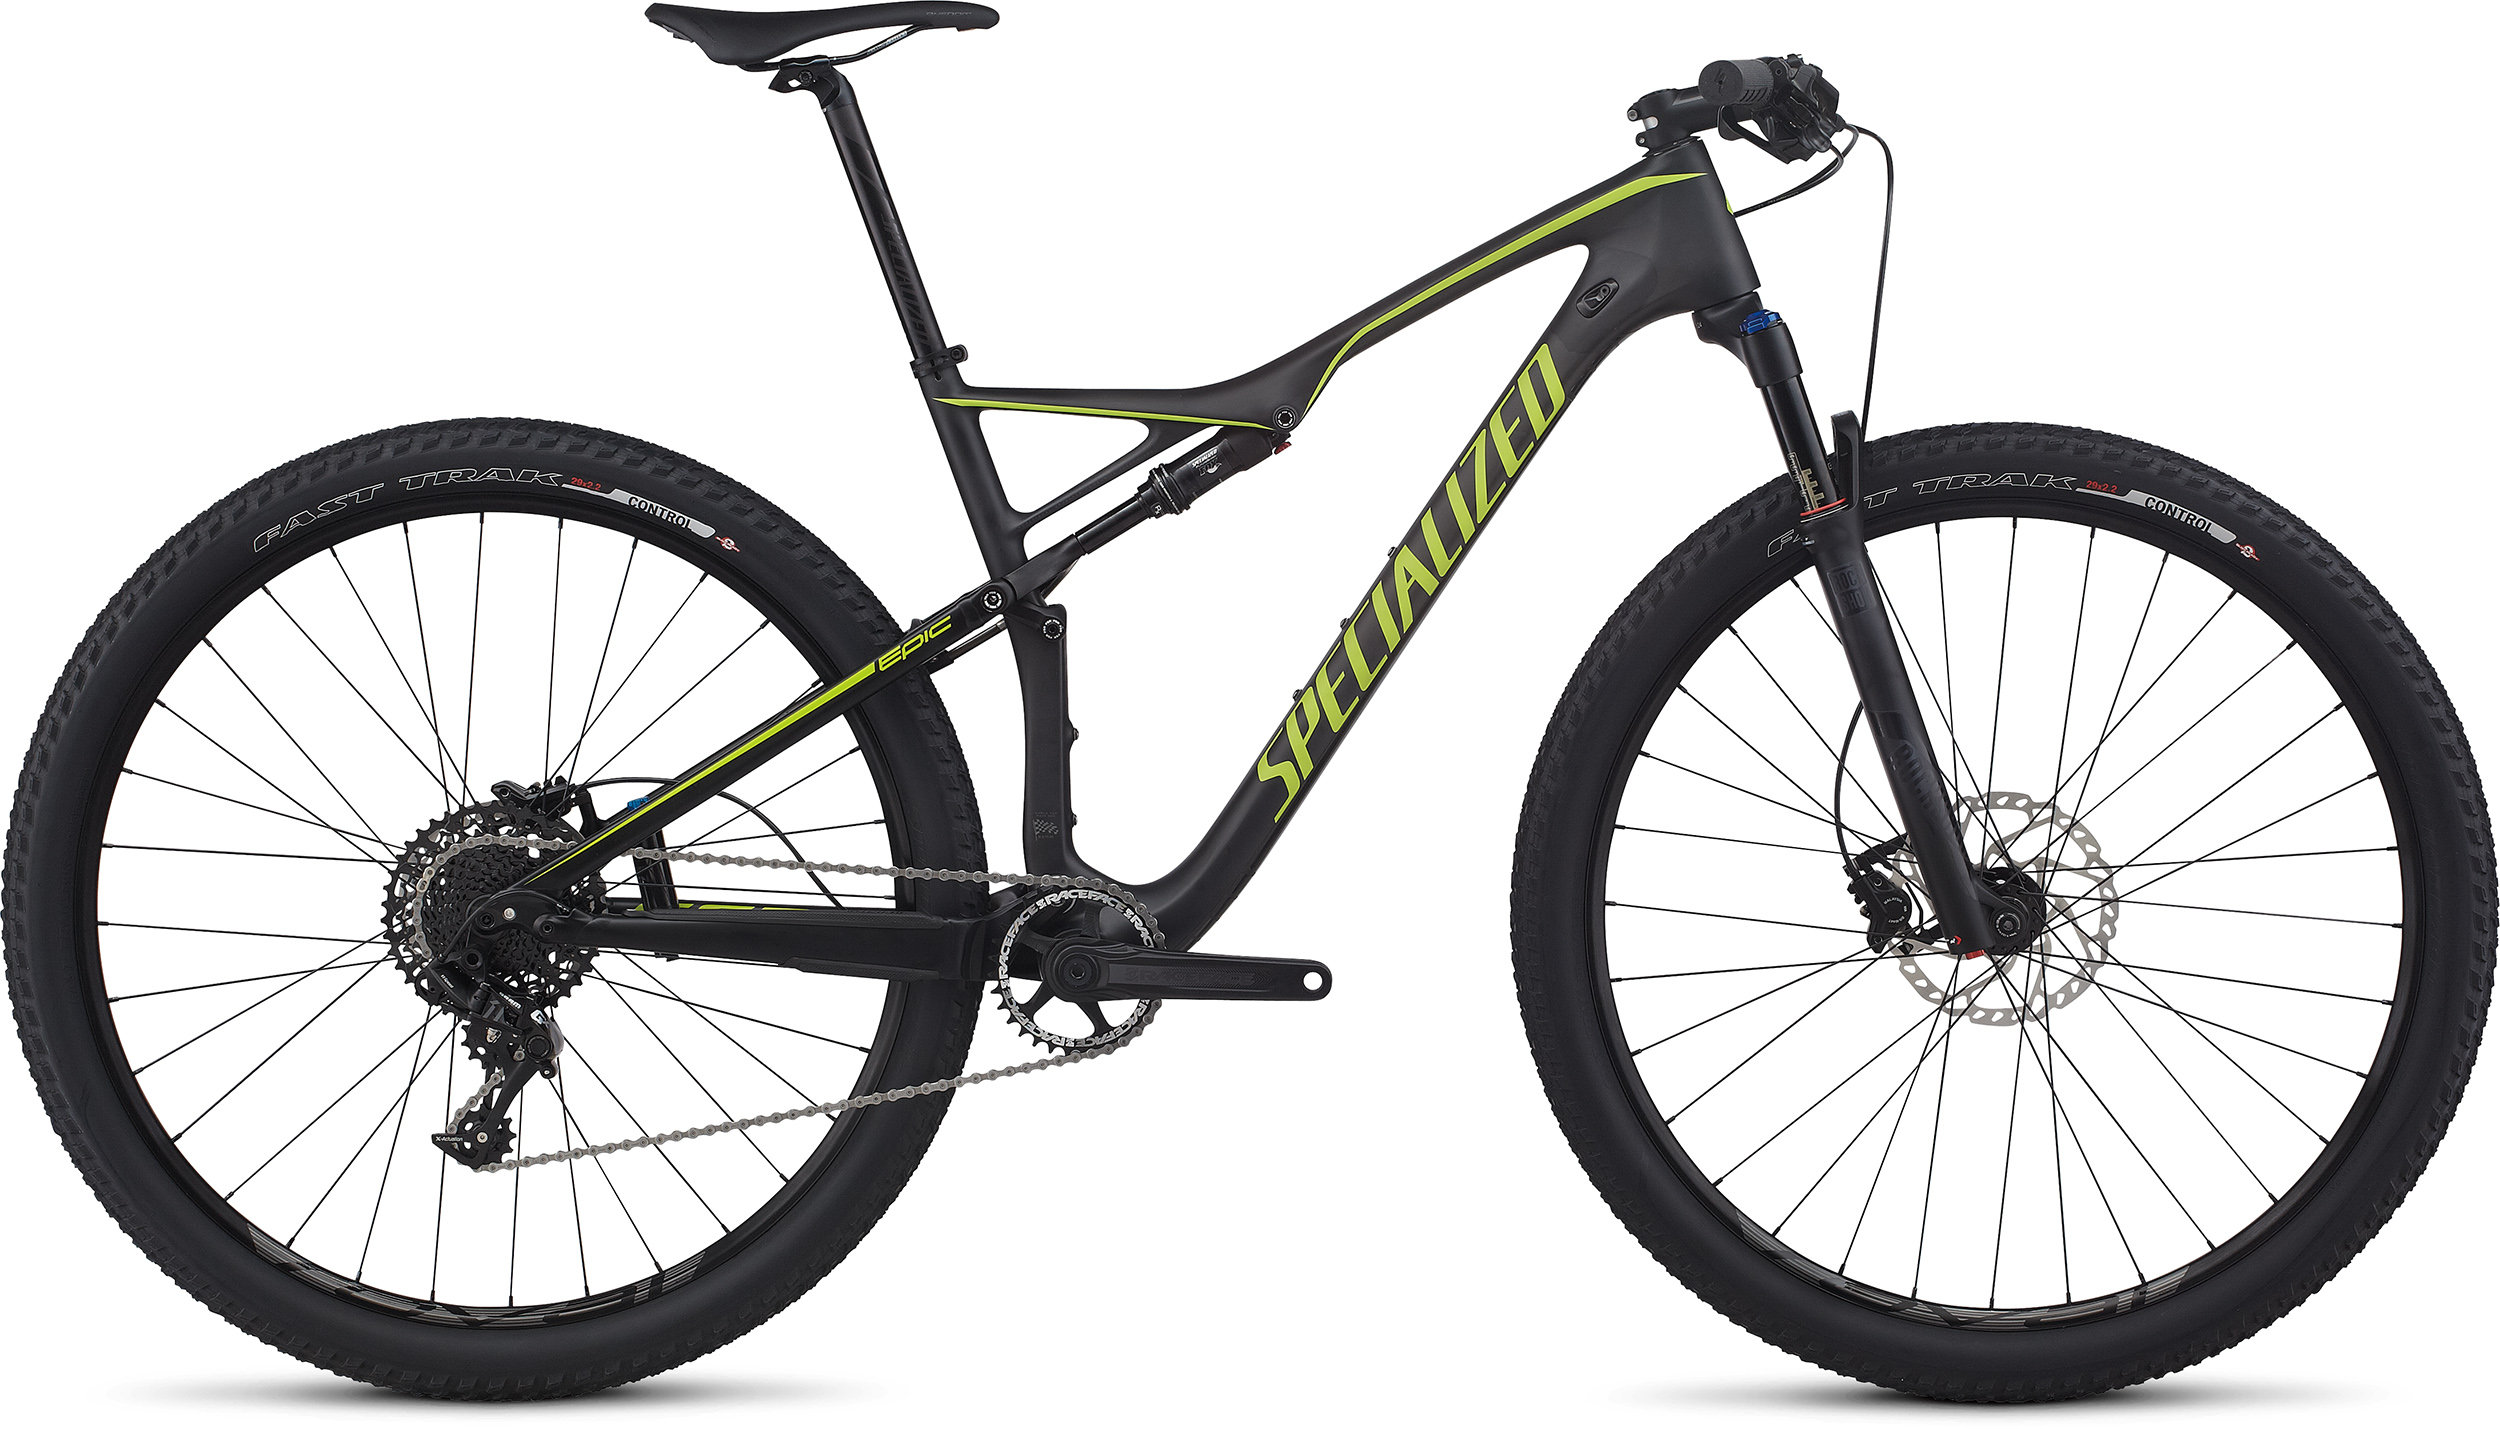 SPECIALIZED EPIC FSR COMP CARBON WC 29 CARB/HYP S - Bikedreams & Dustbikes